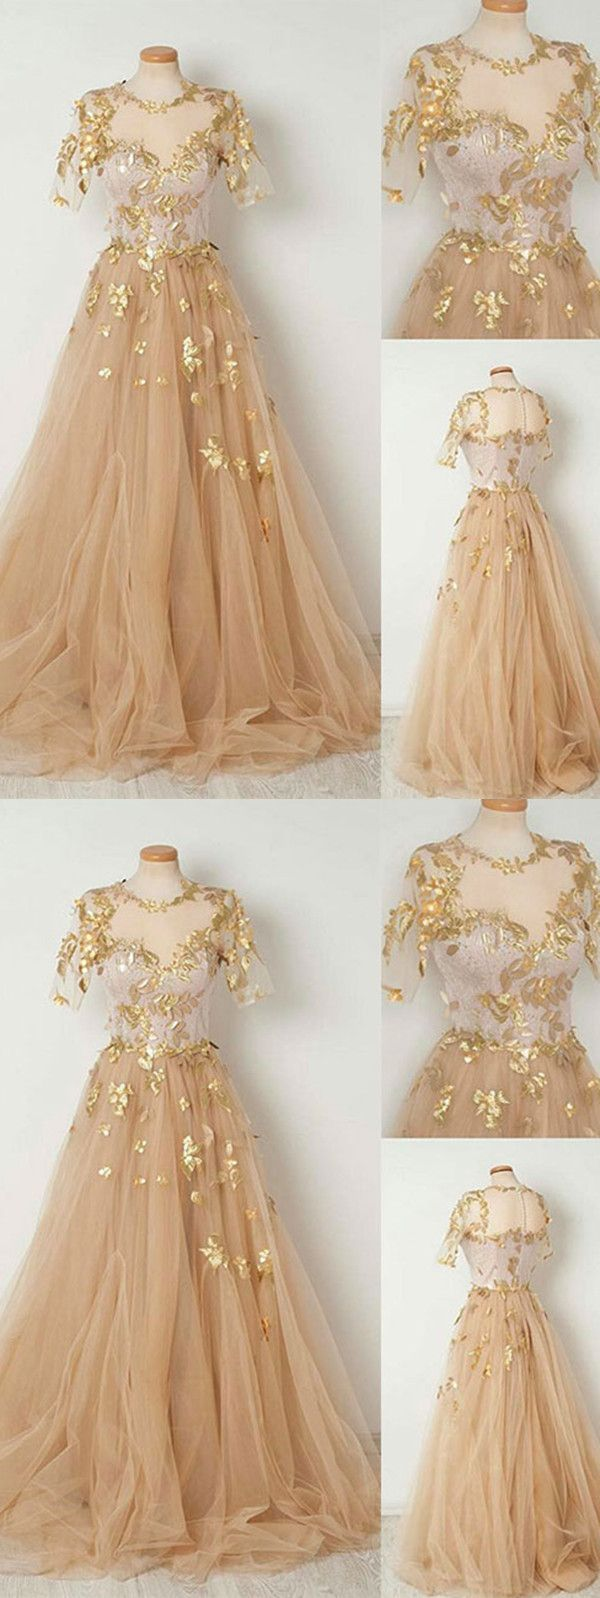 #tulle #champagne #gold #champagne #tulle